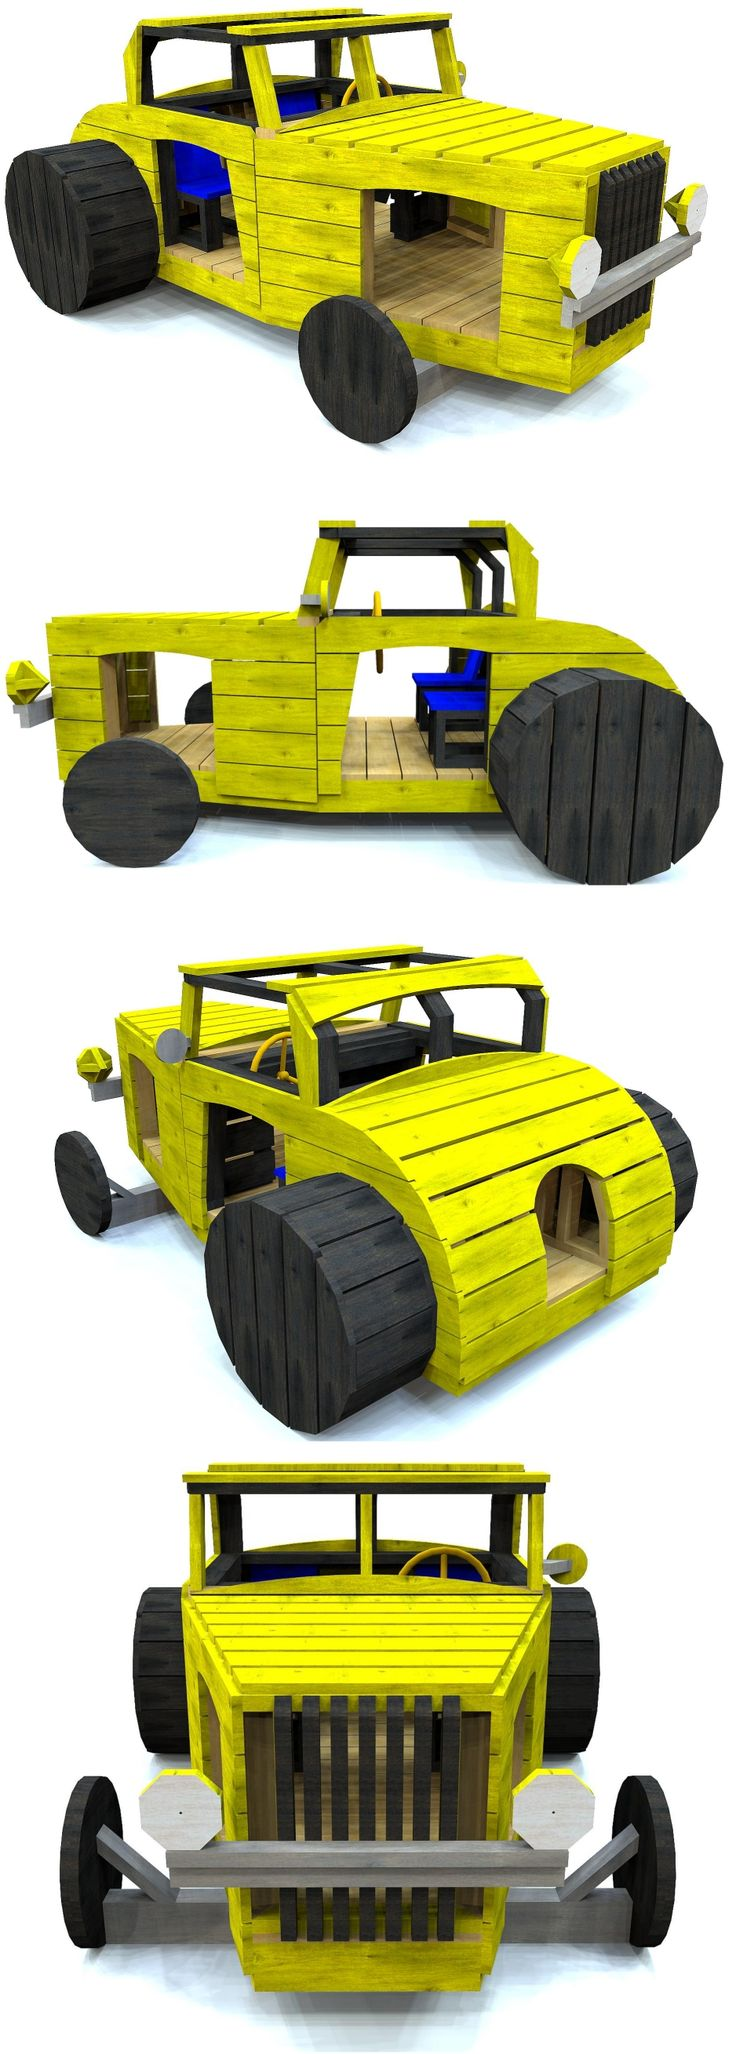 Wooden, two person hot rod play-set for kids aged 3-8. Buy the plans at Paulsplayhouses.com